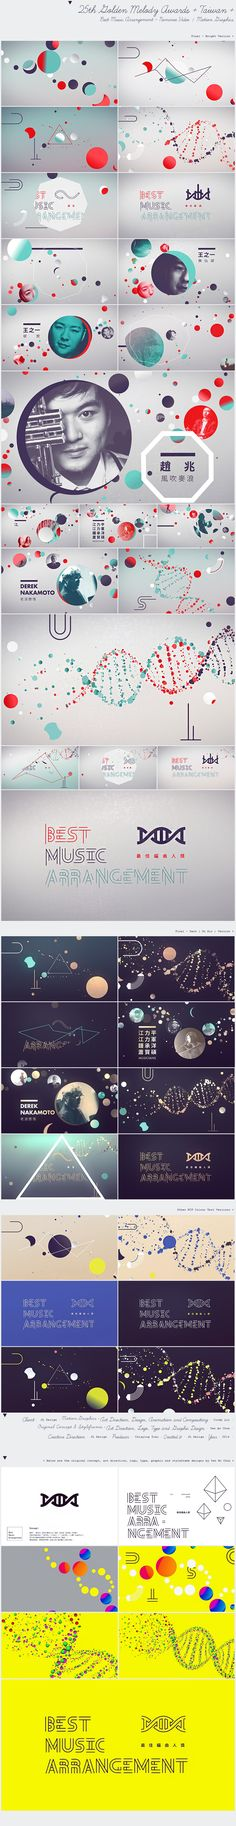 Motion graphics style frames and channel branding http://www.cindyashes.com/79.html